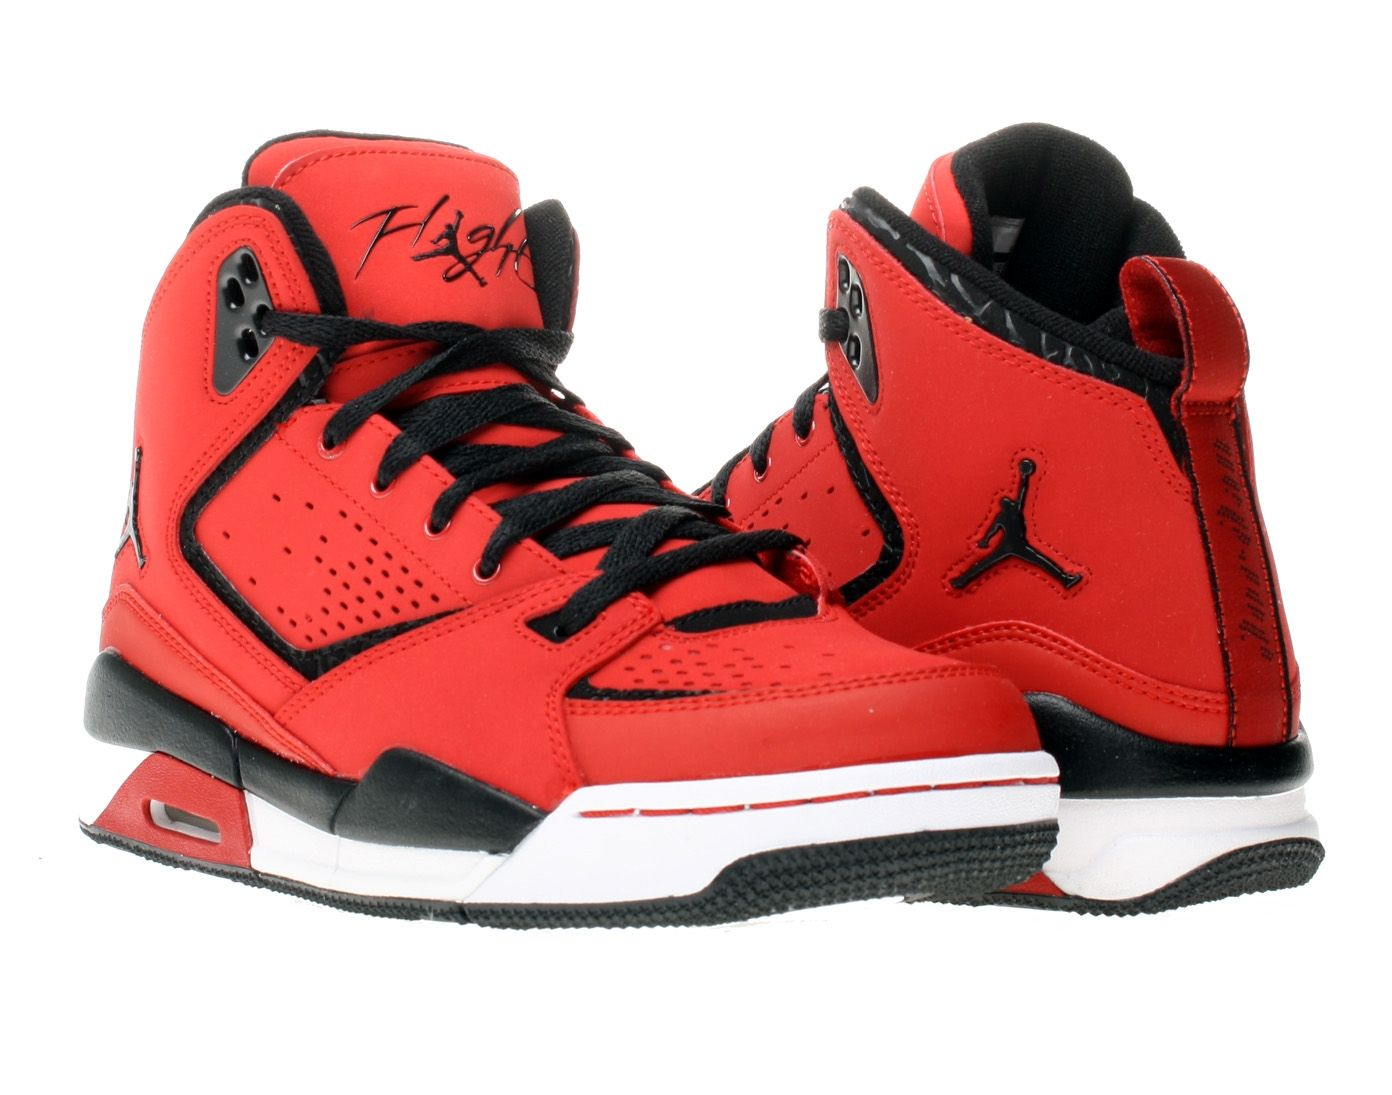 jordan shoes | Nike Air Jordan SC-2 (GS) Boys Basketball ...